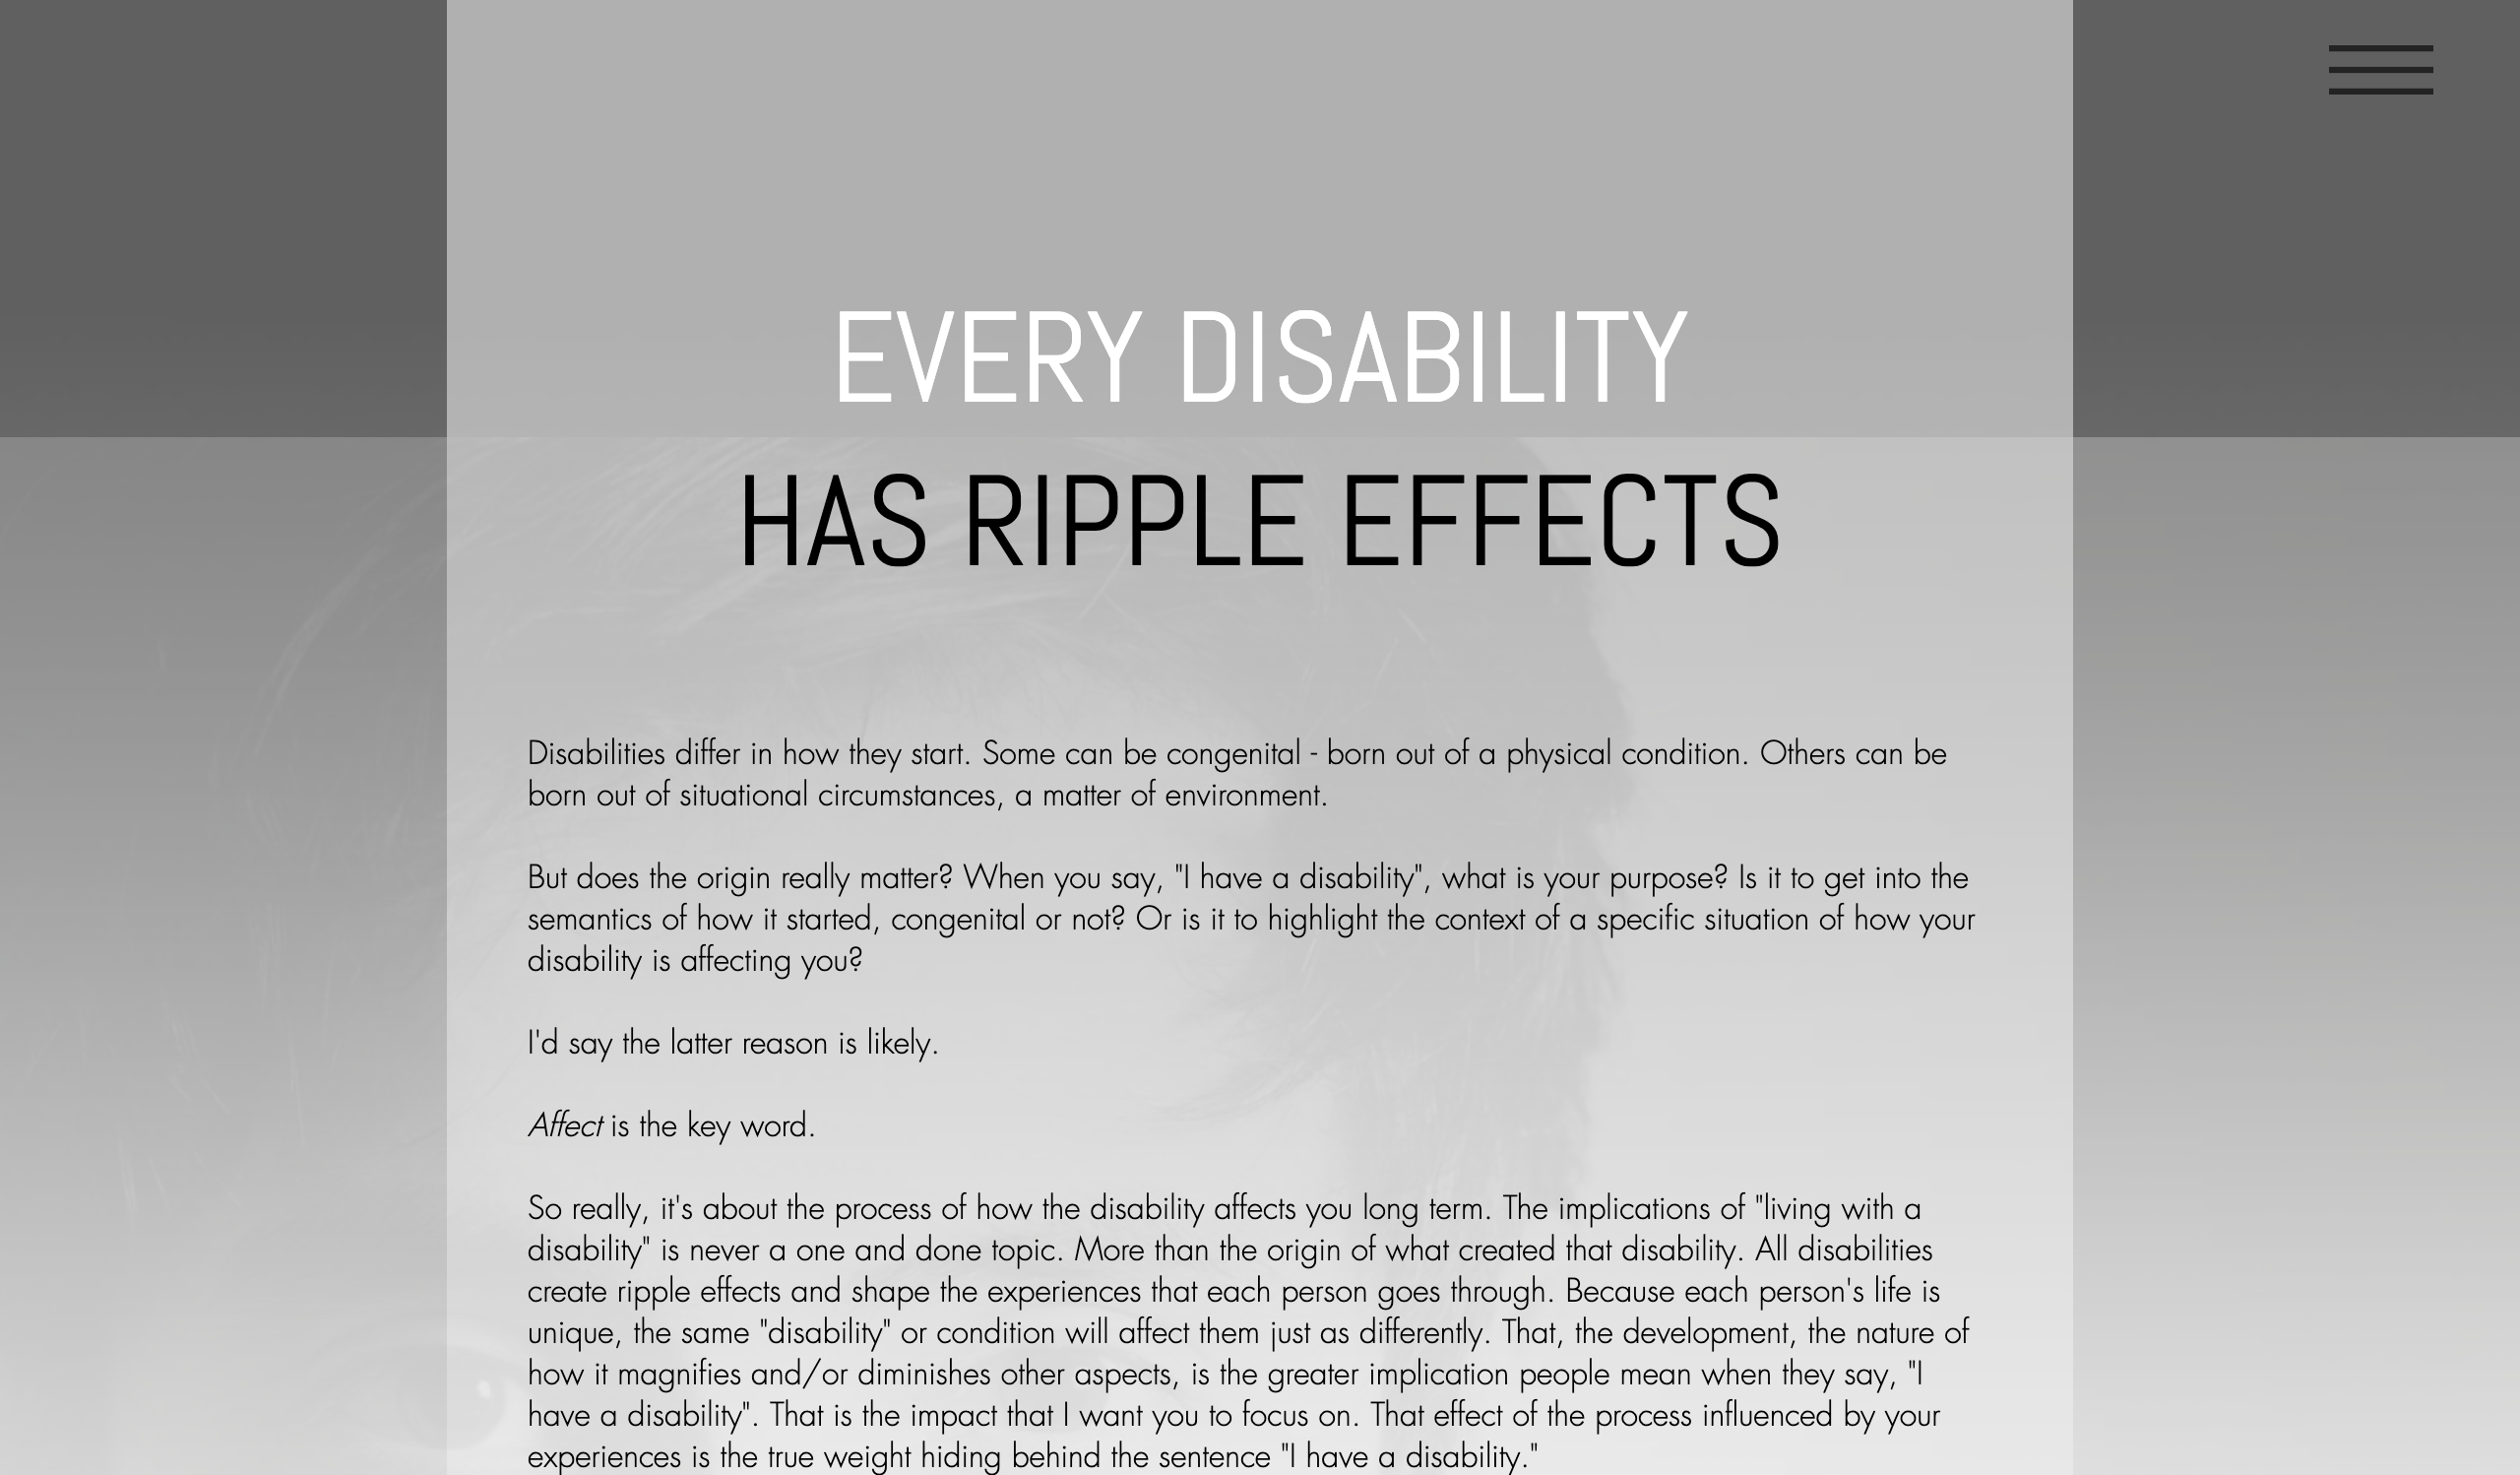 EVERY DISABILITY HAS RIPPLE EFFECTS